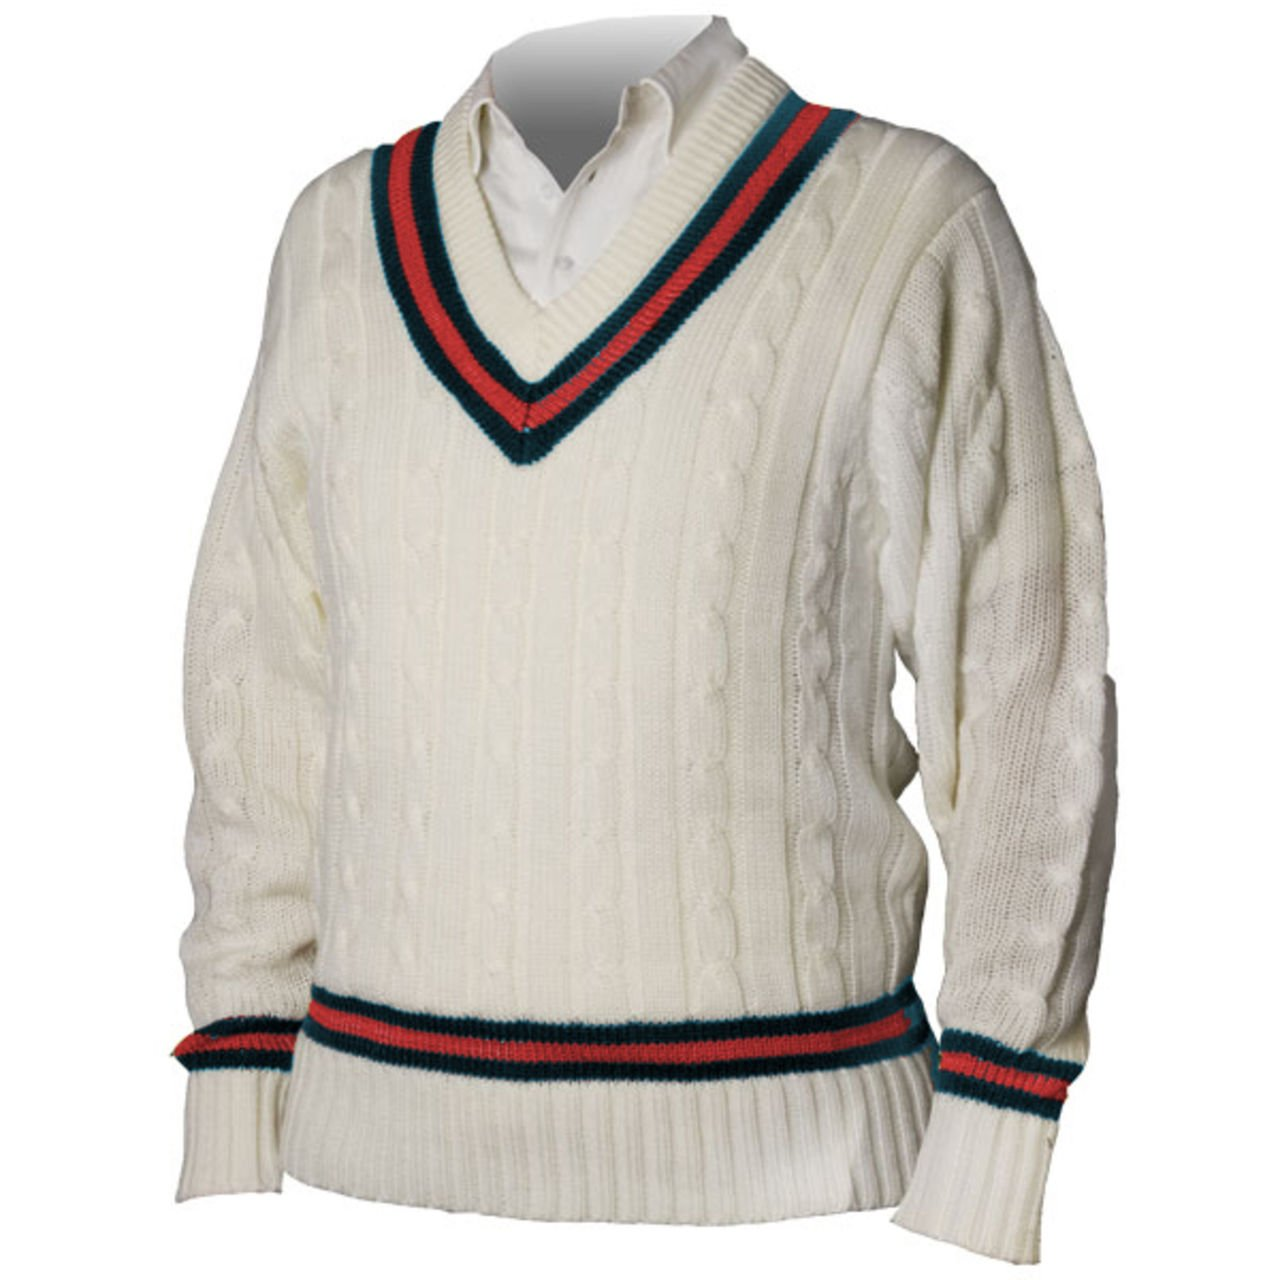 Edwardian Men's Shirts & Sweaters Cricket Full Sleeve Sweater Acrylic Navy/Red $59.36 AT vintagedancer.com